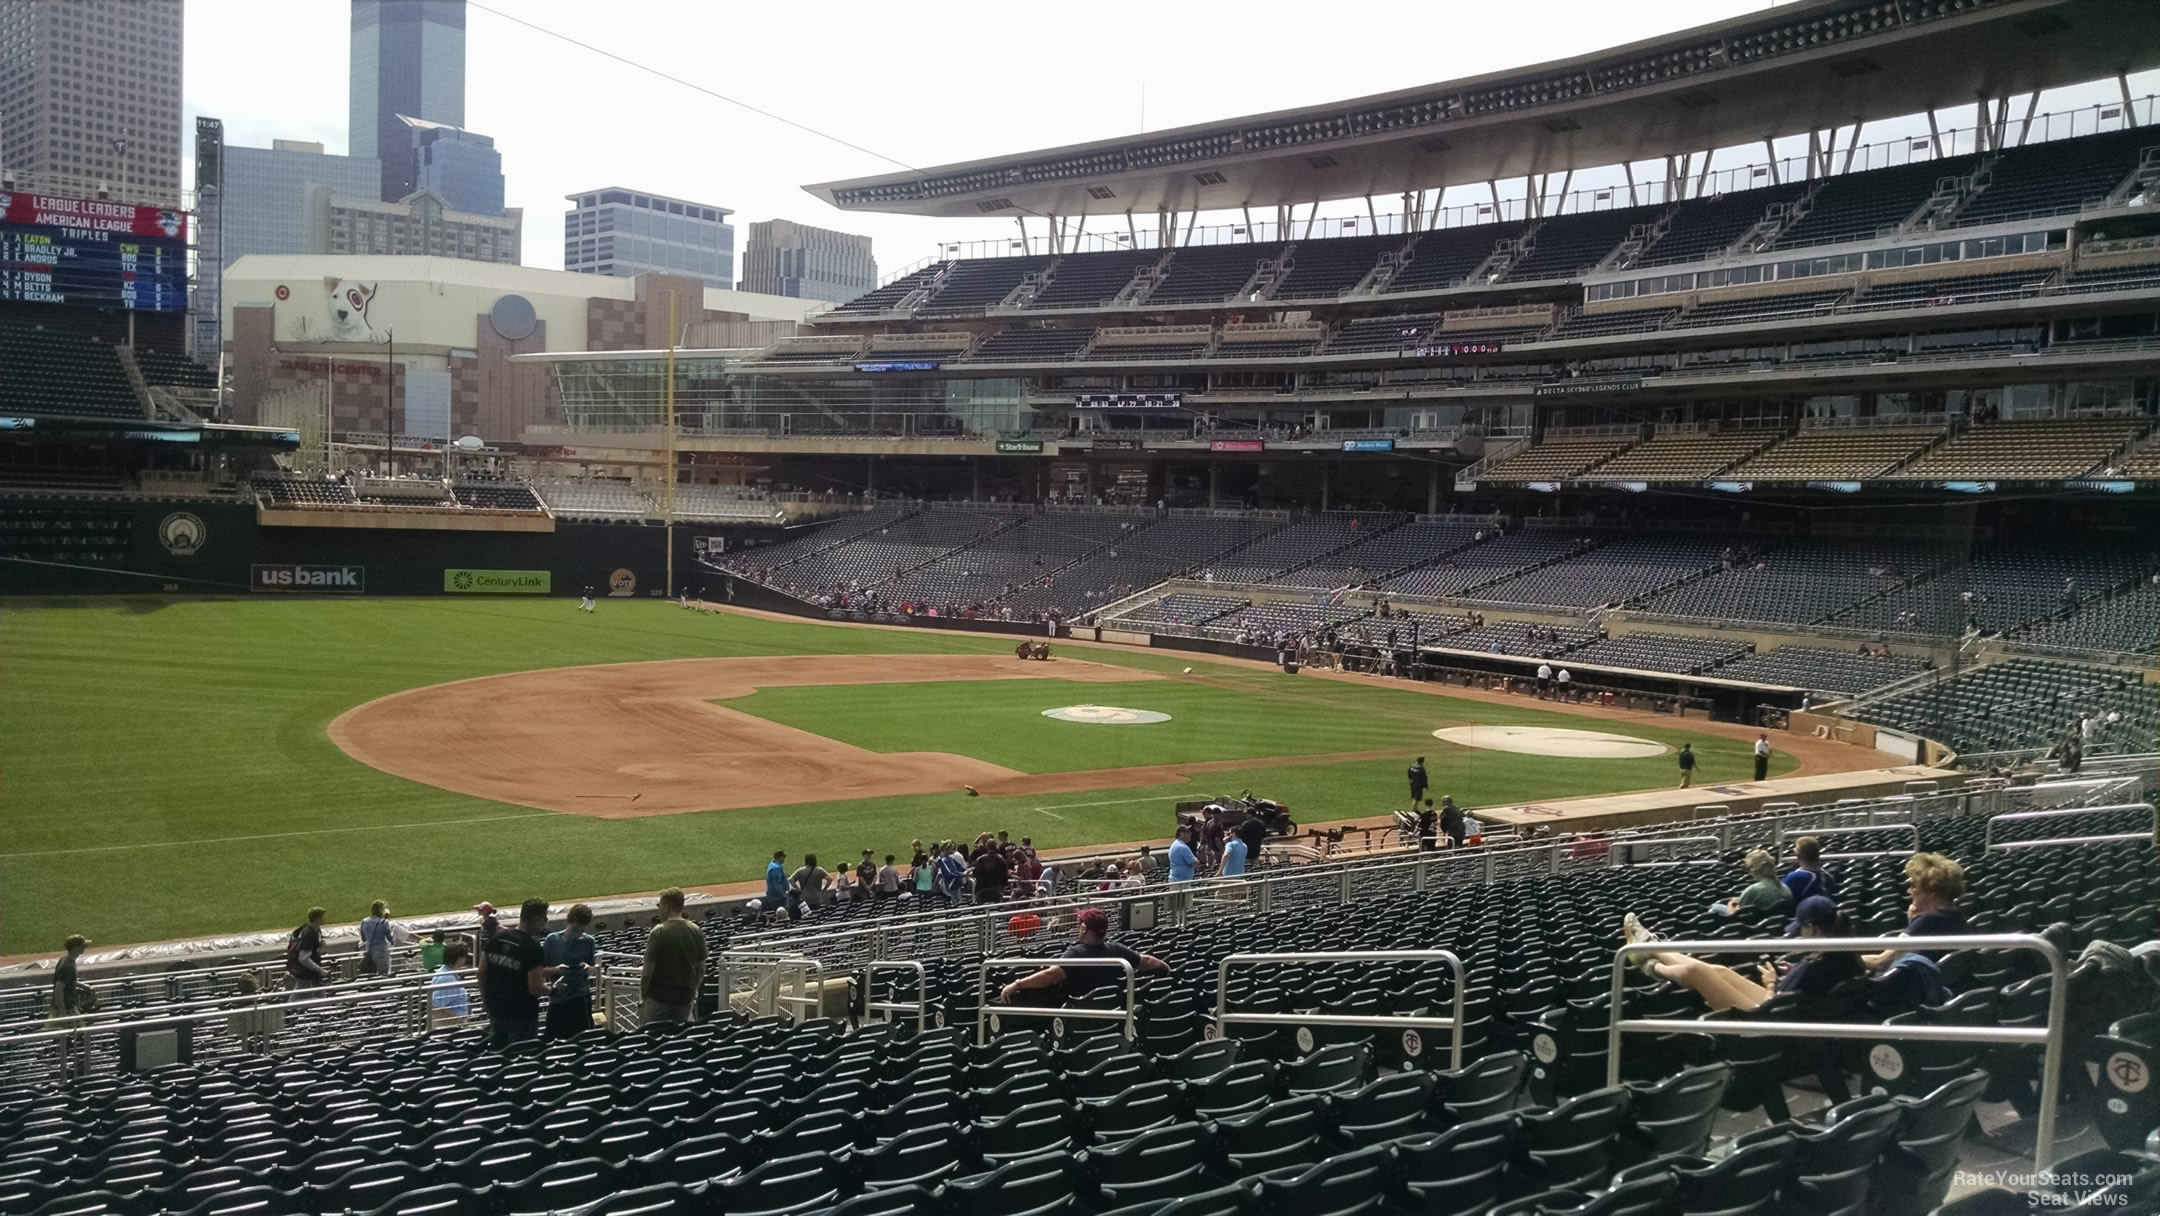 Target Field Section 122 - RateYourSeats.com